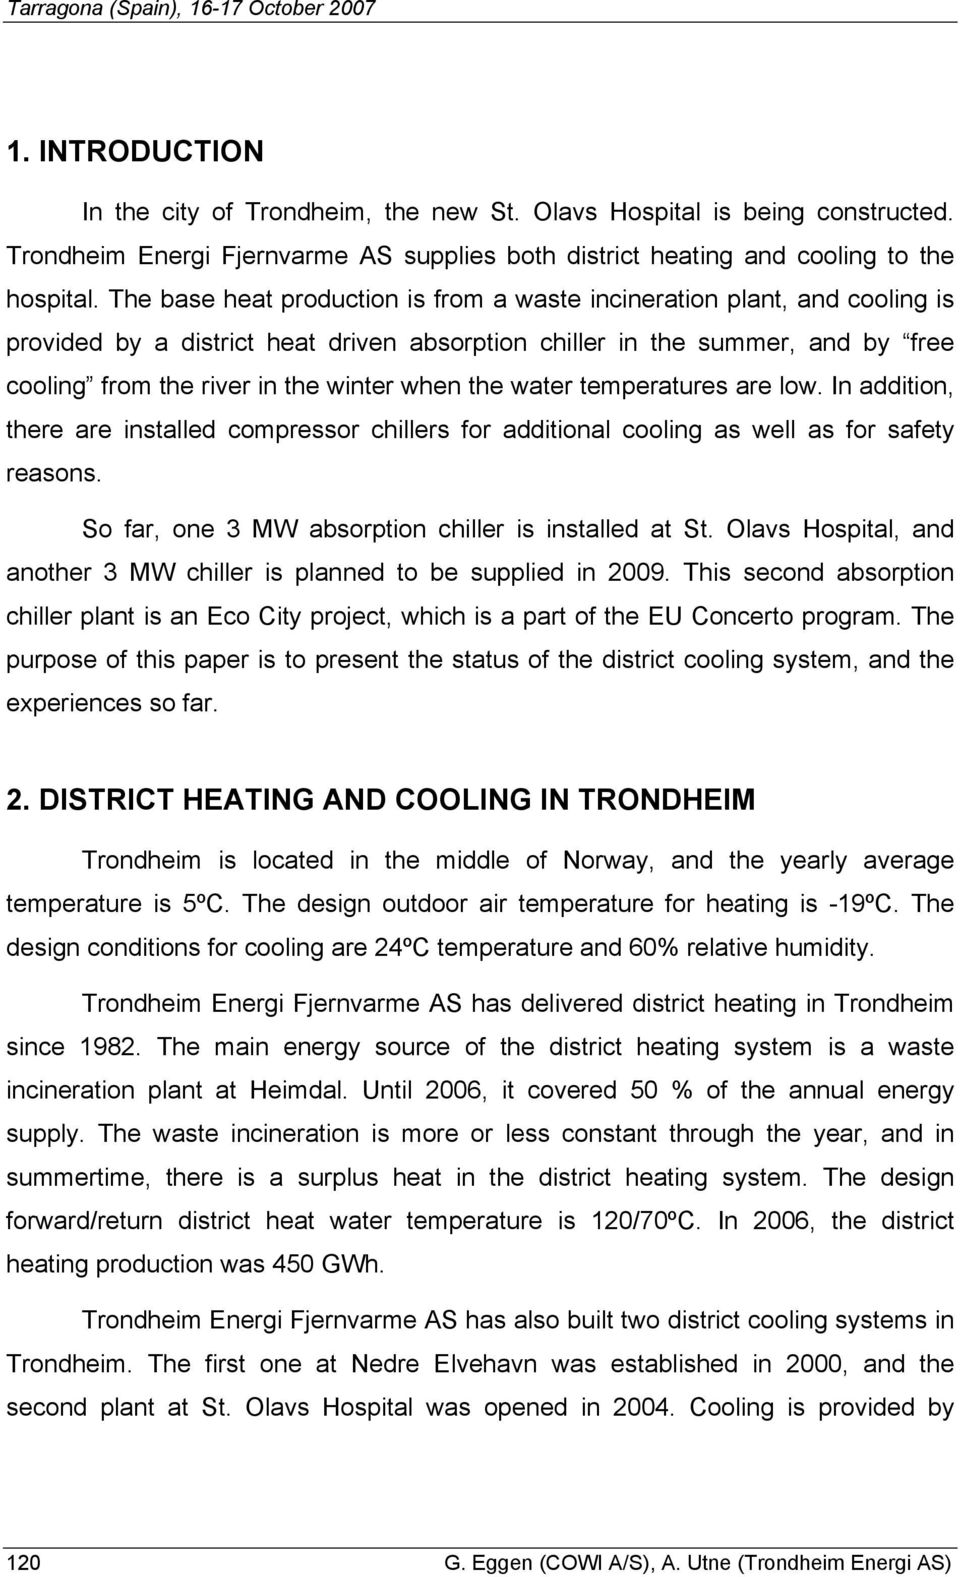 The base heat production is from a waste incineration plant, and cooling is provided by a district heat driven absorption chiller in the summer, and by free cooling from the river in the winter when